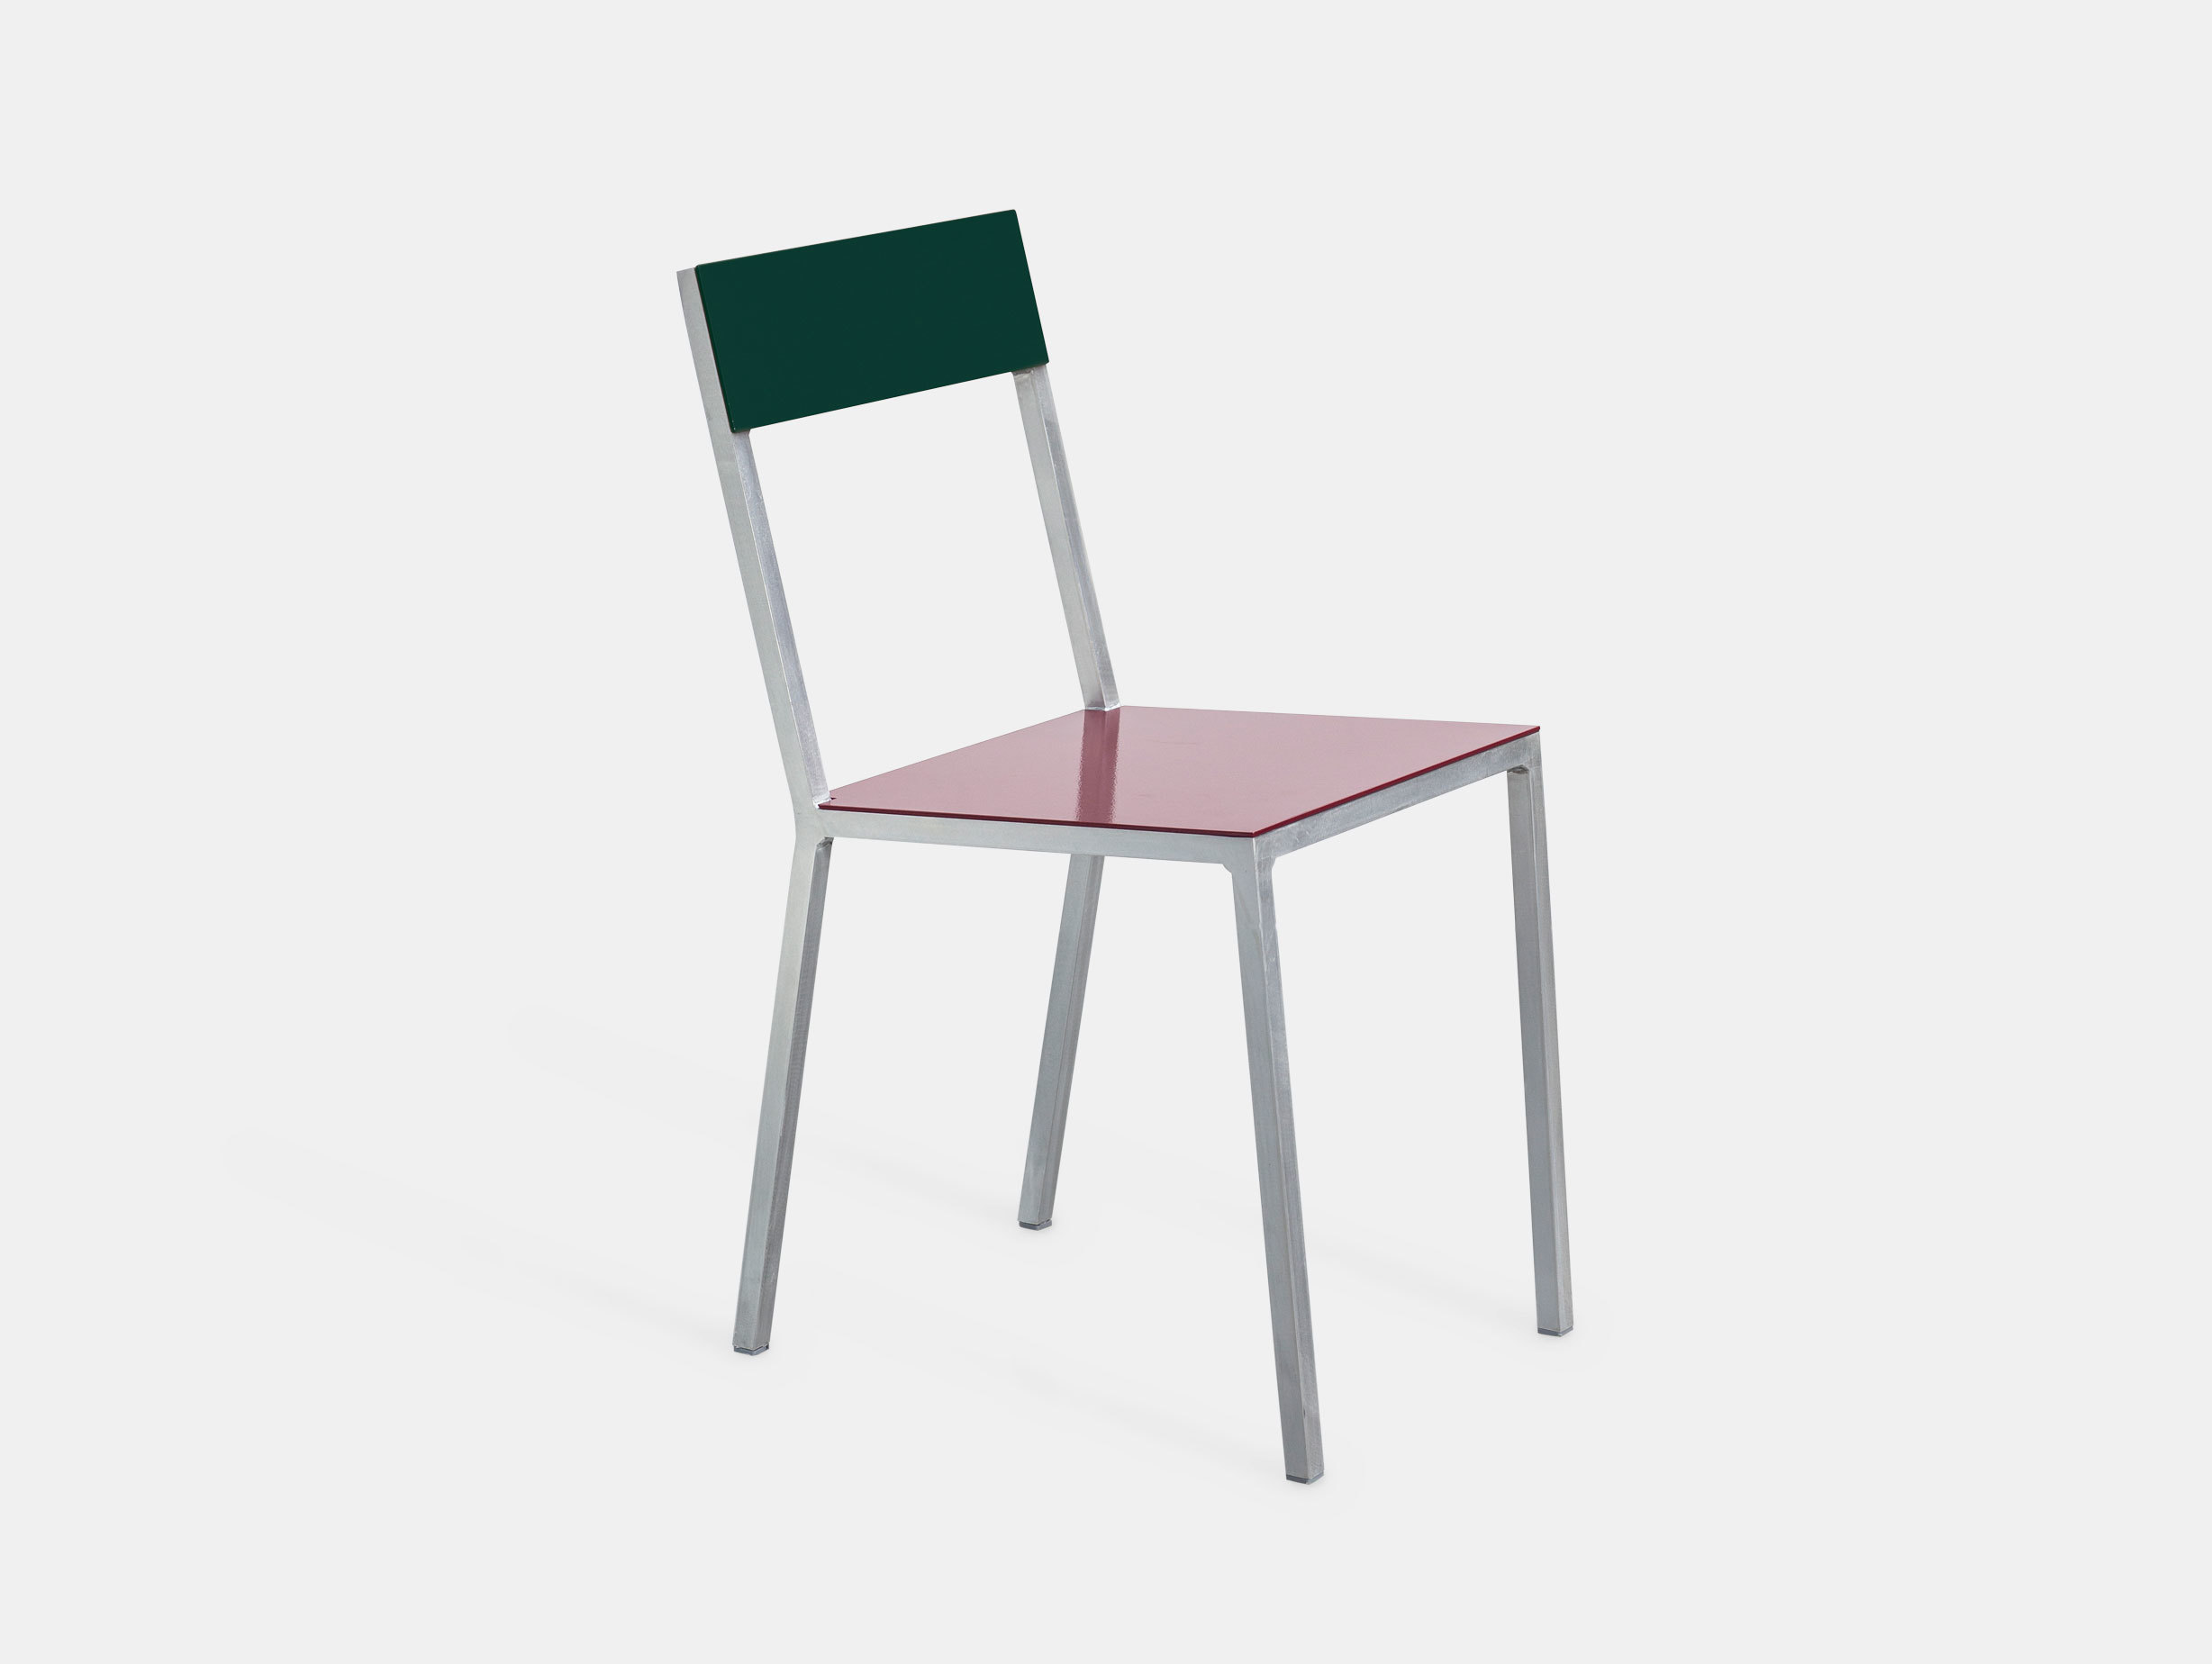 Valerie Objects Alu Chair Green Burgundy Muller Van Severen